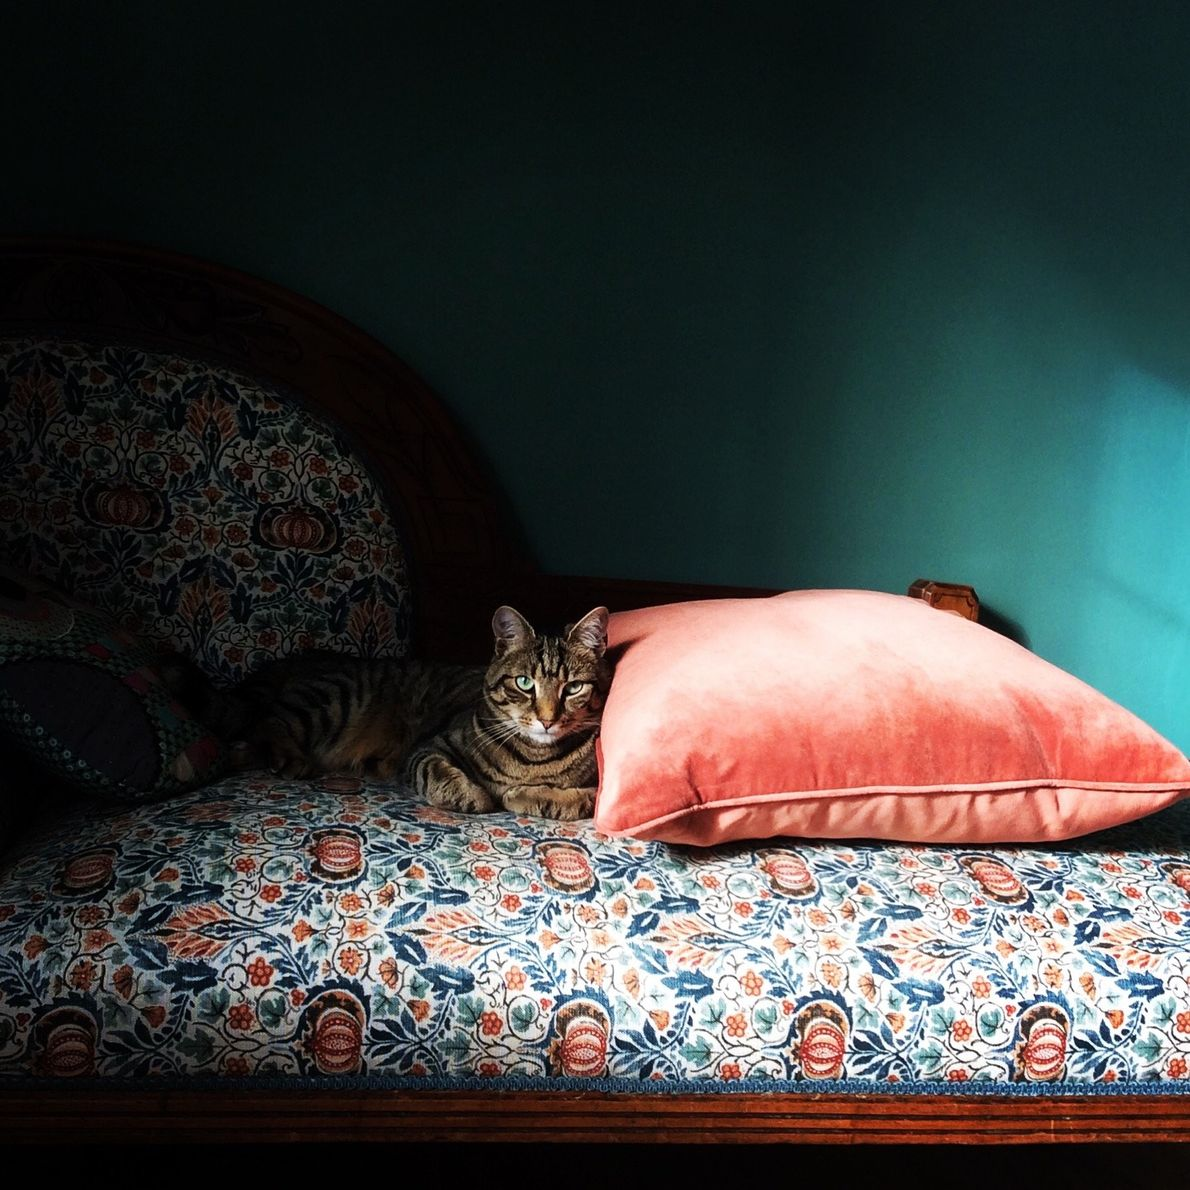 Your Shot photographer Wendy Thomas made this portrait of her cat, Mr. Muffles, also known as ...